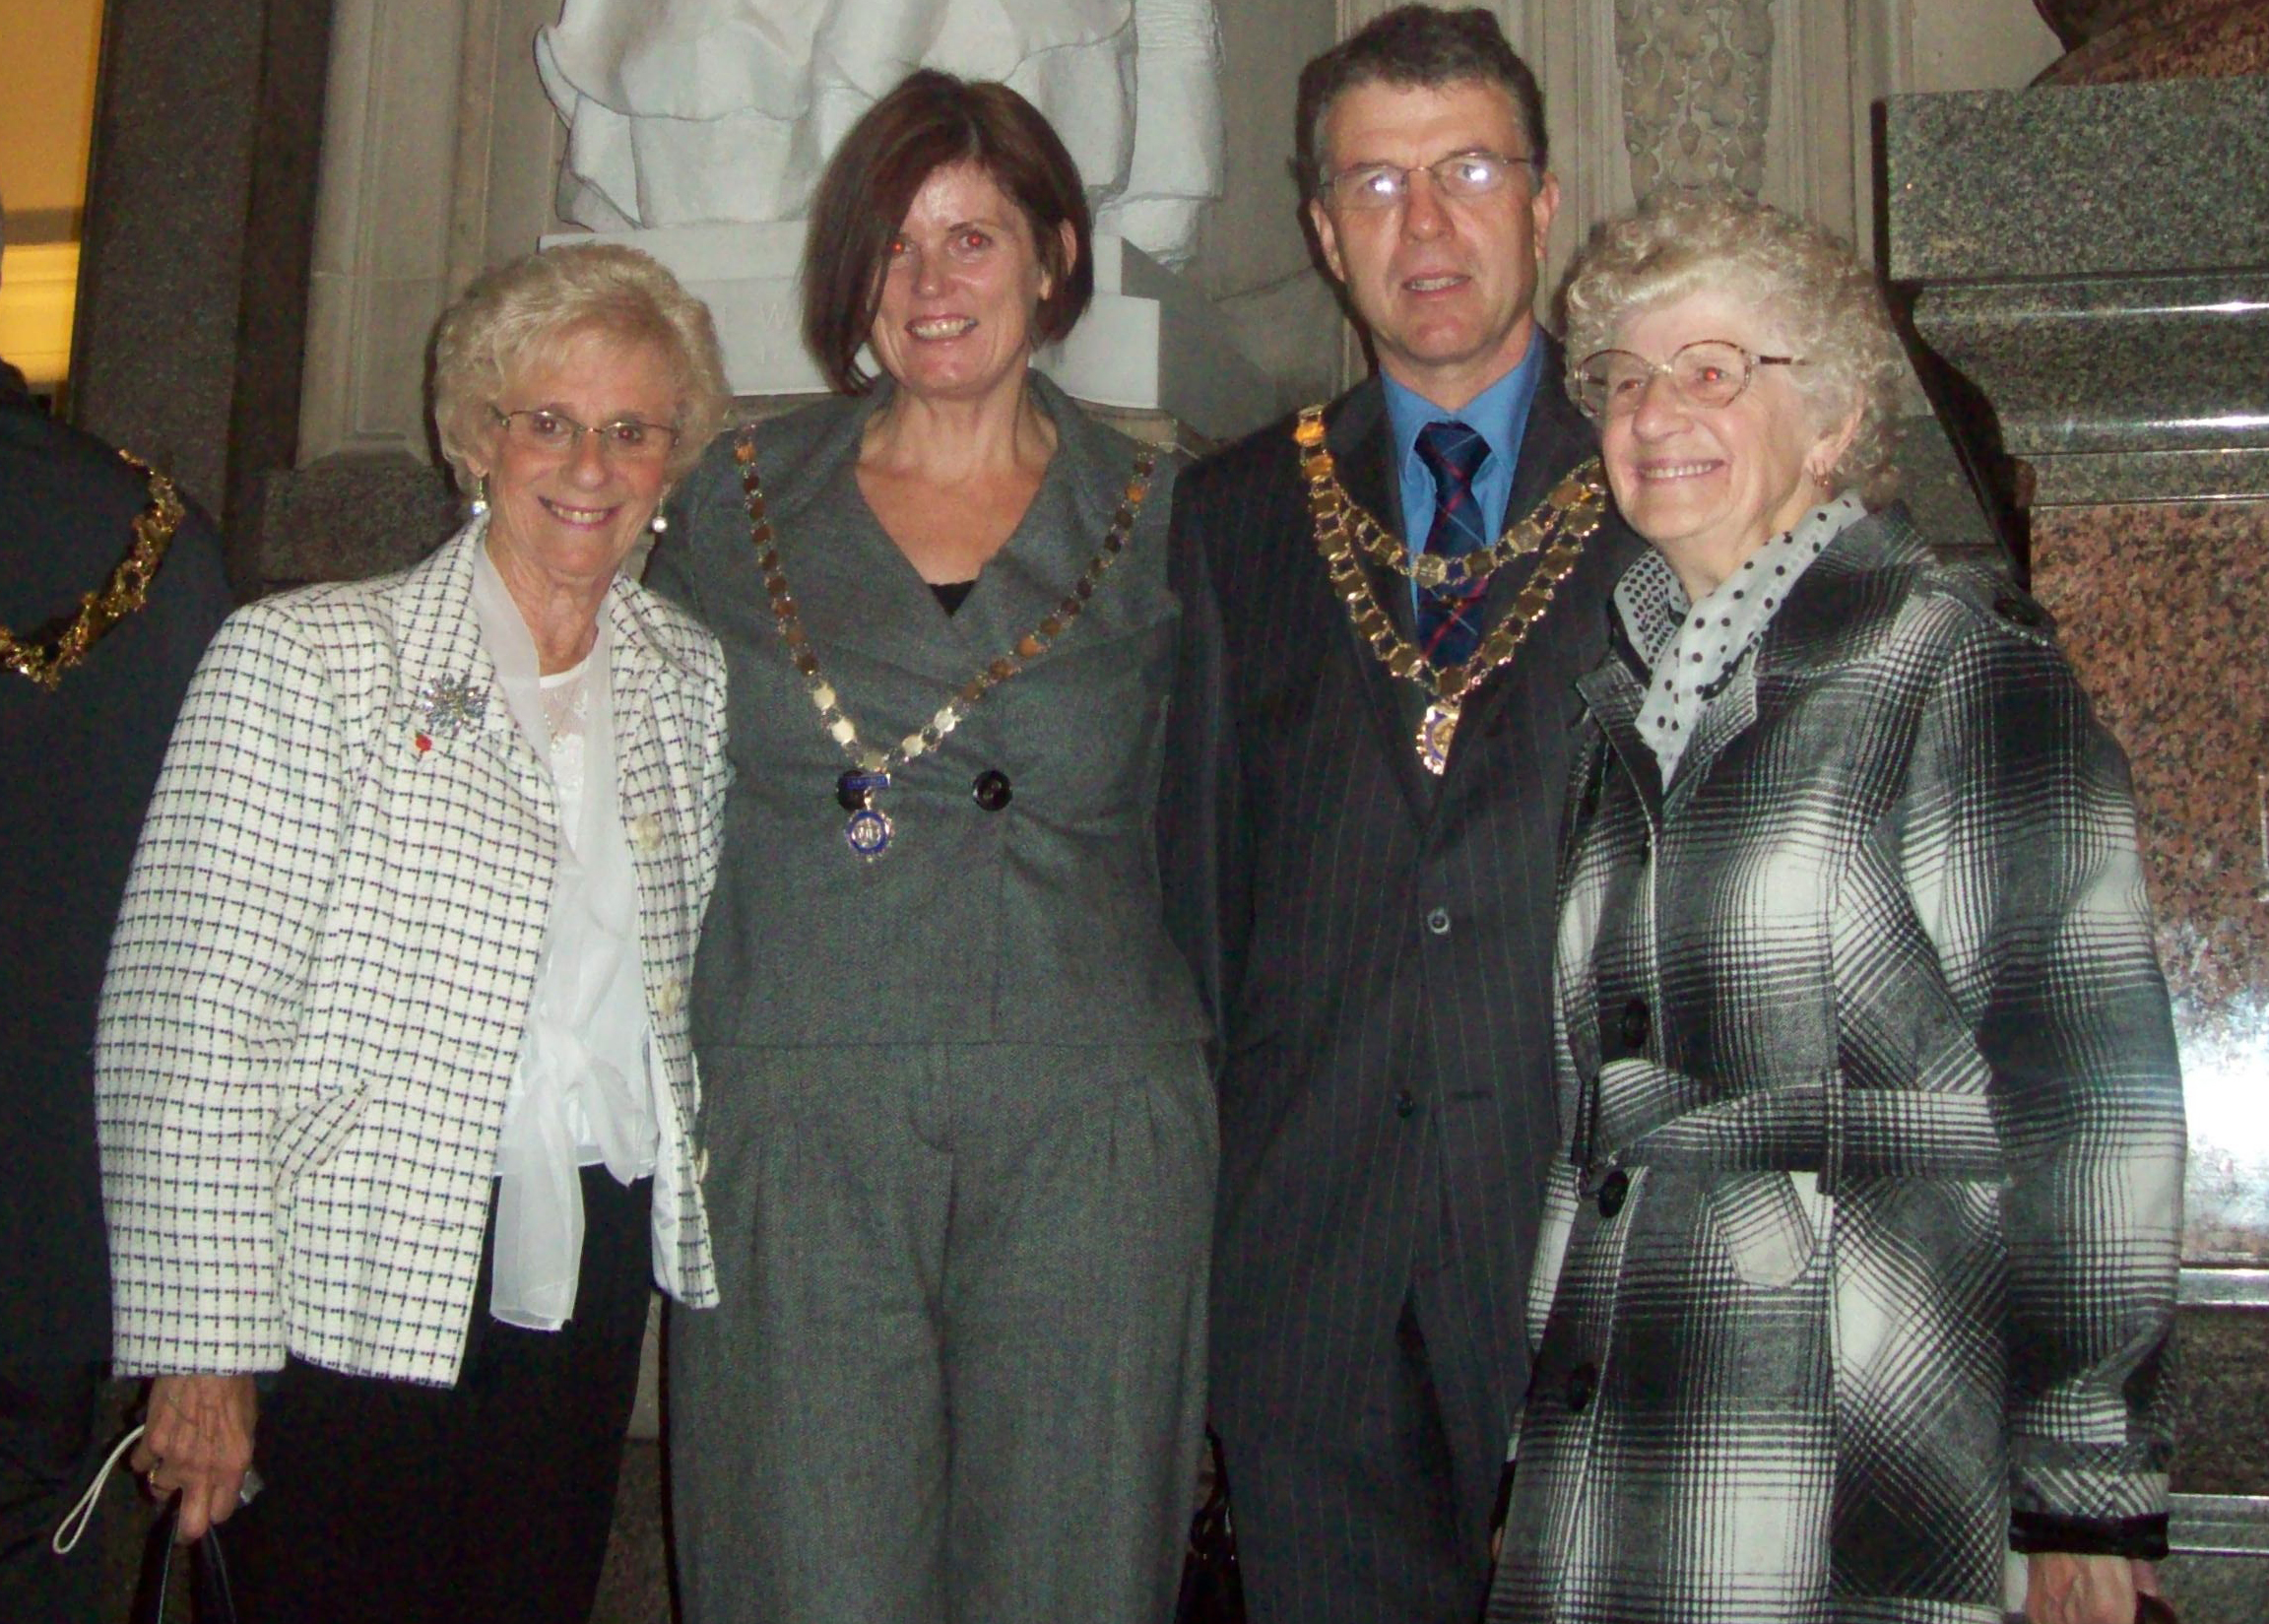 Mayor and Mayoress of Maghull Cllrs Steve and Gwen Kermode and descendents of Kitty Wilkinson Dorothy Philips and Marion Wright with the newly unveiled statue.